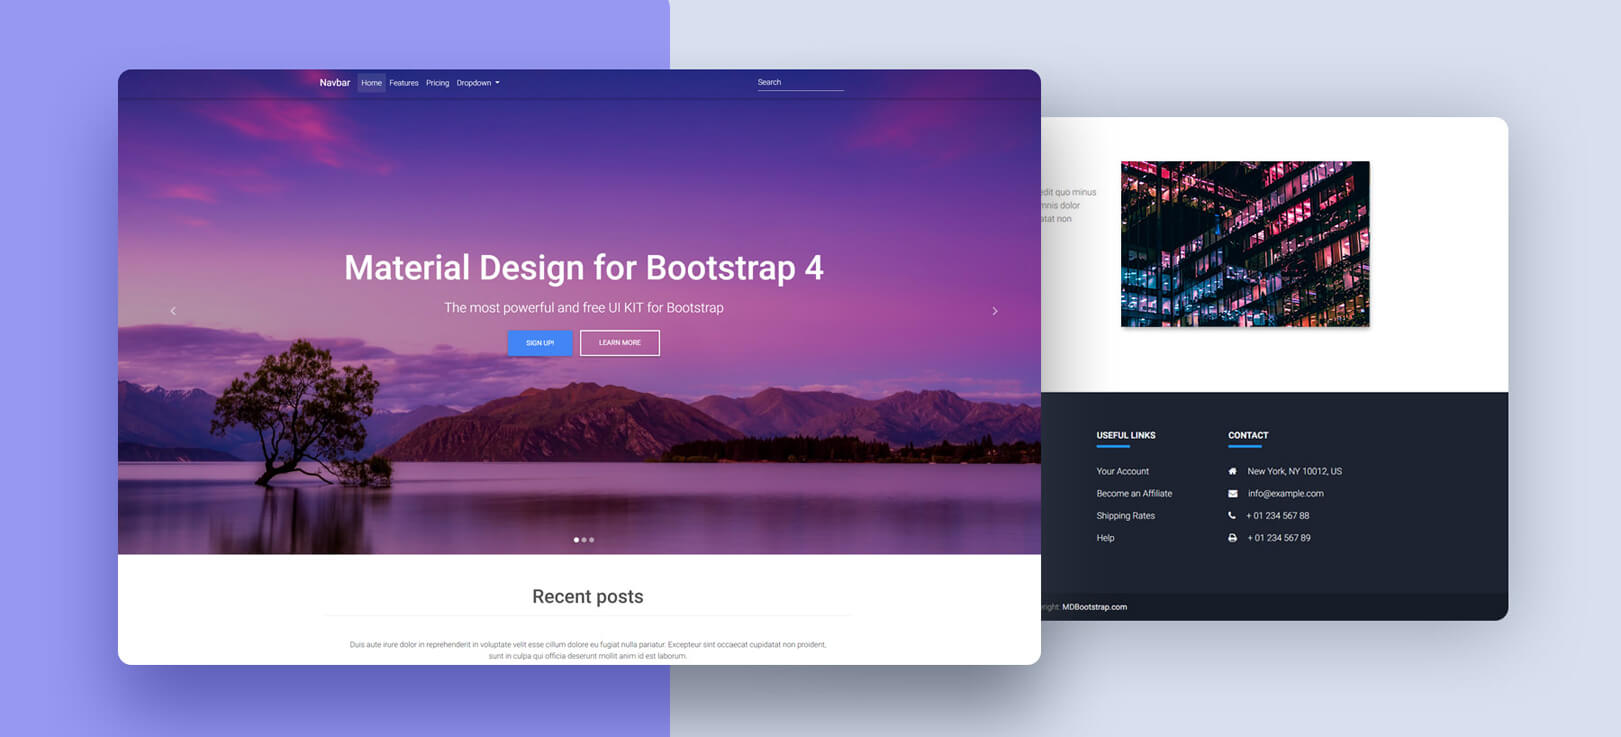 Full Page Image Carousel Material Design For Bootstrap